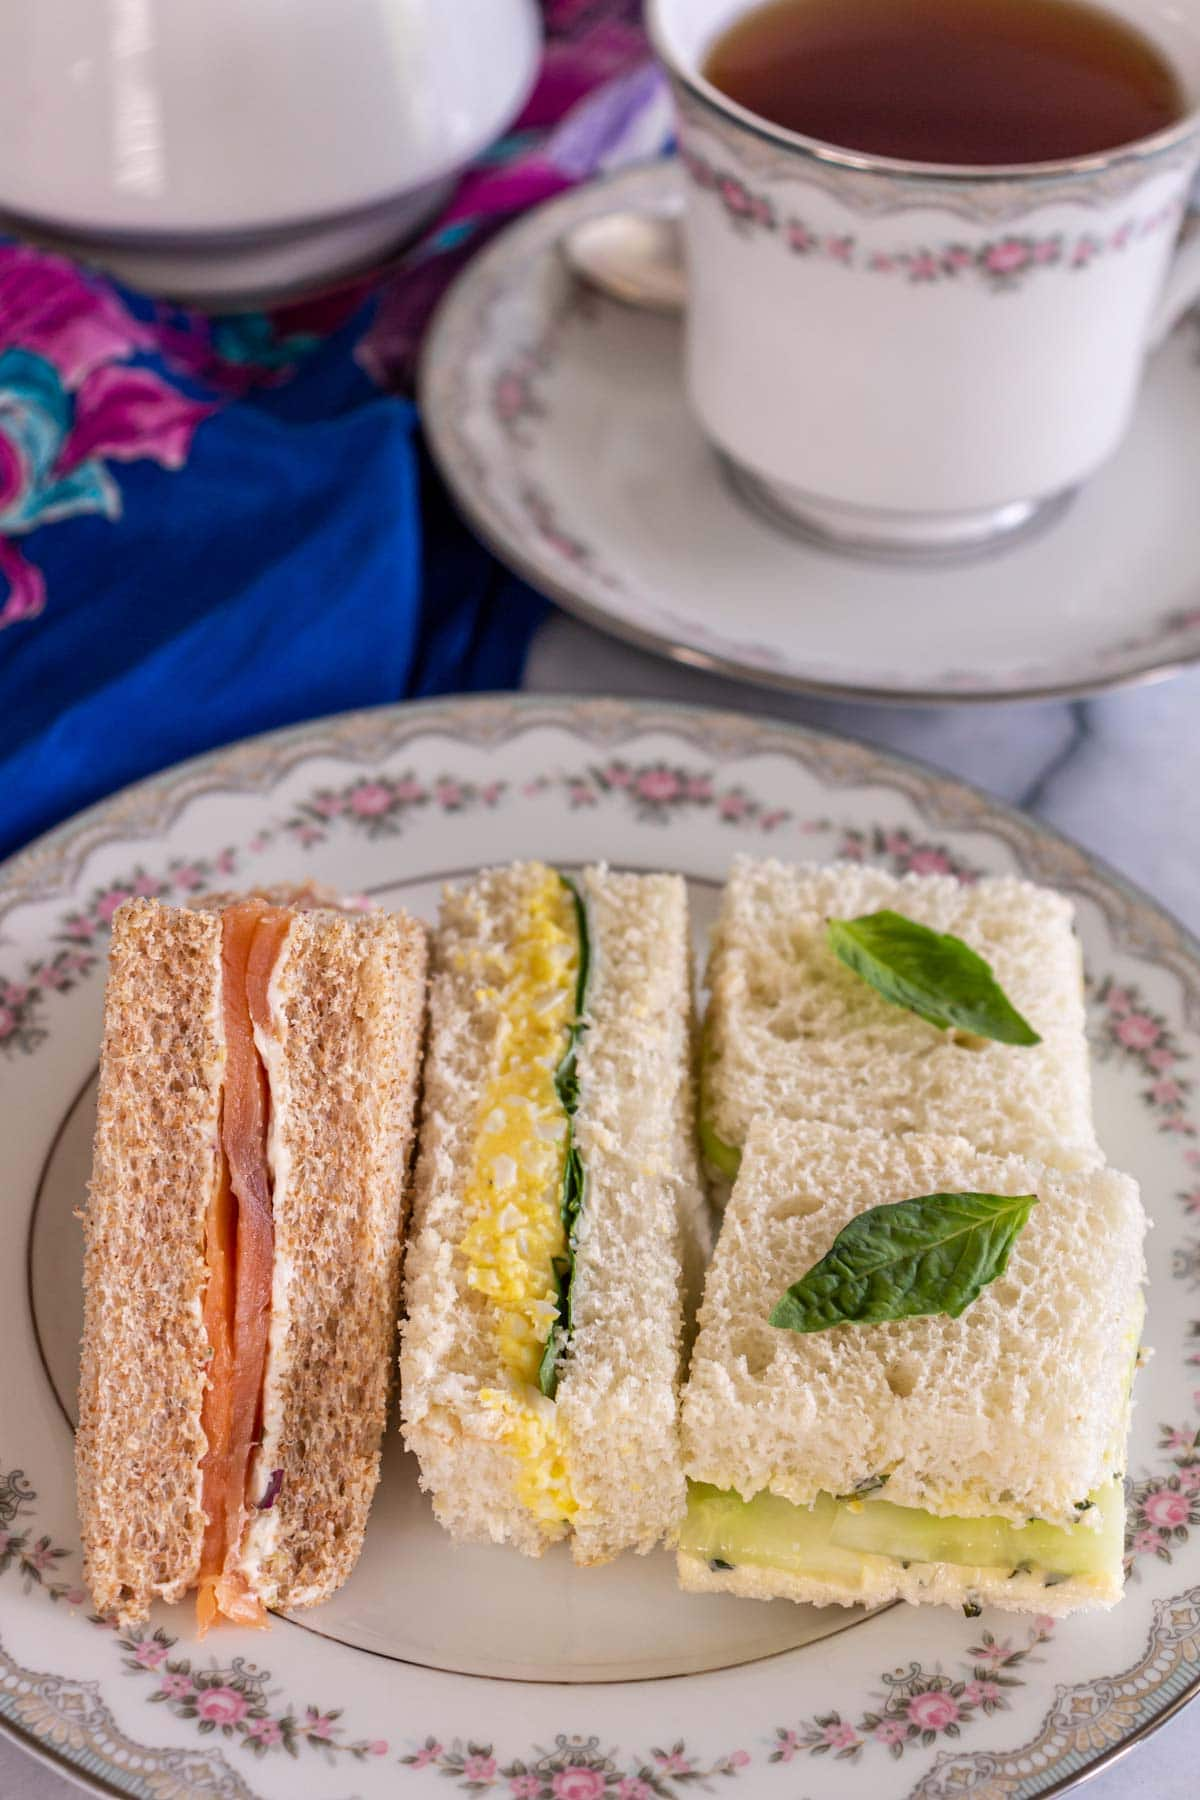 An assortment of tea sandwiches on a china plate in front of a cup of tea.